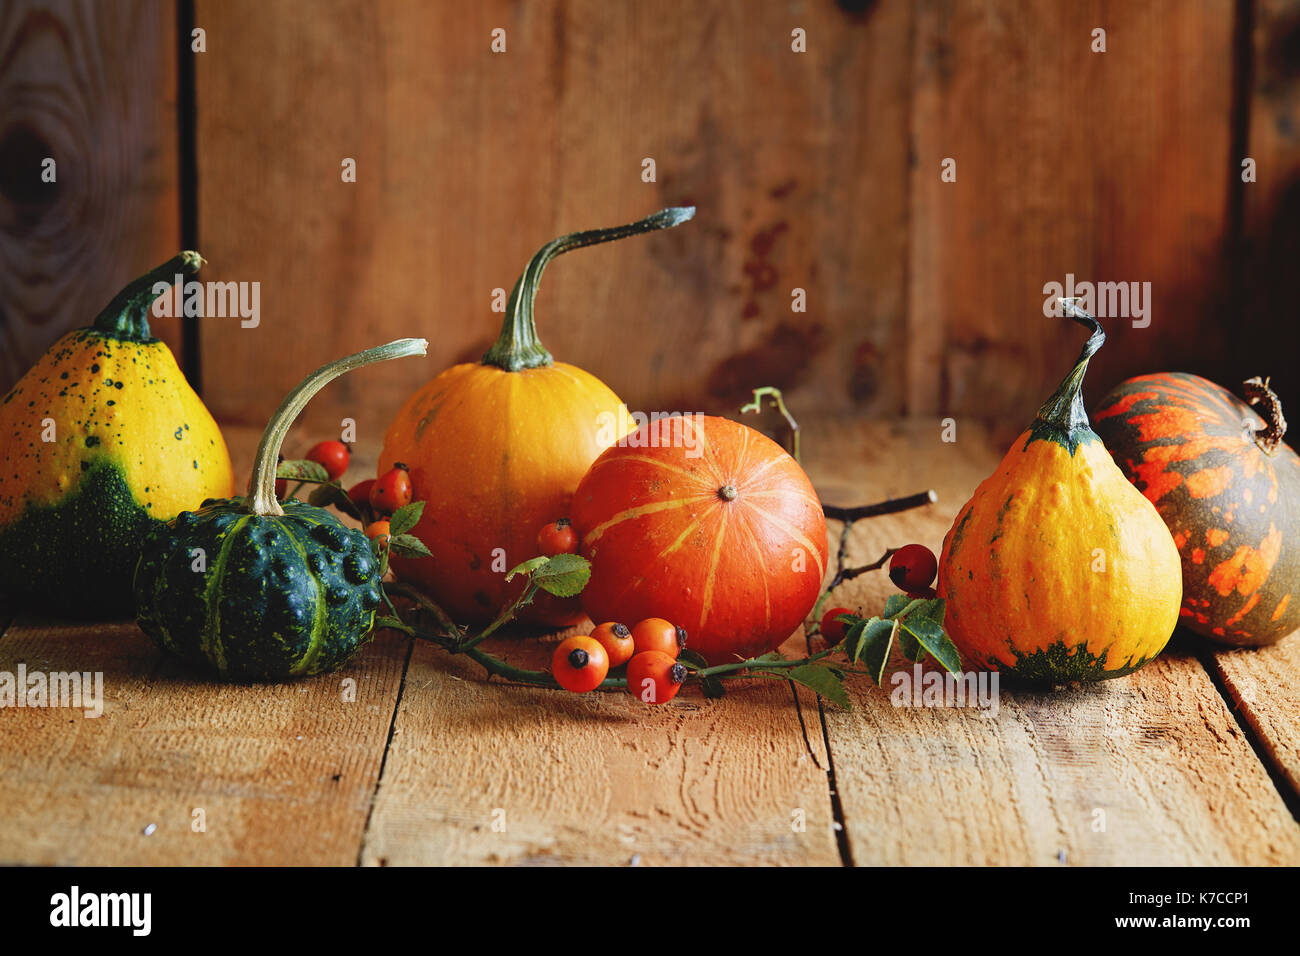 Various types of pumpkin on a wooden table. Autumn arrangement: ornamental gourds with rose hips - Stock Image